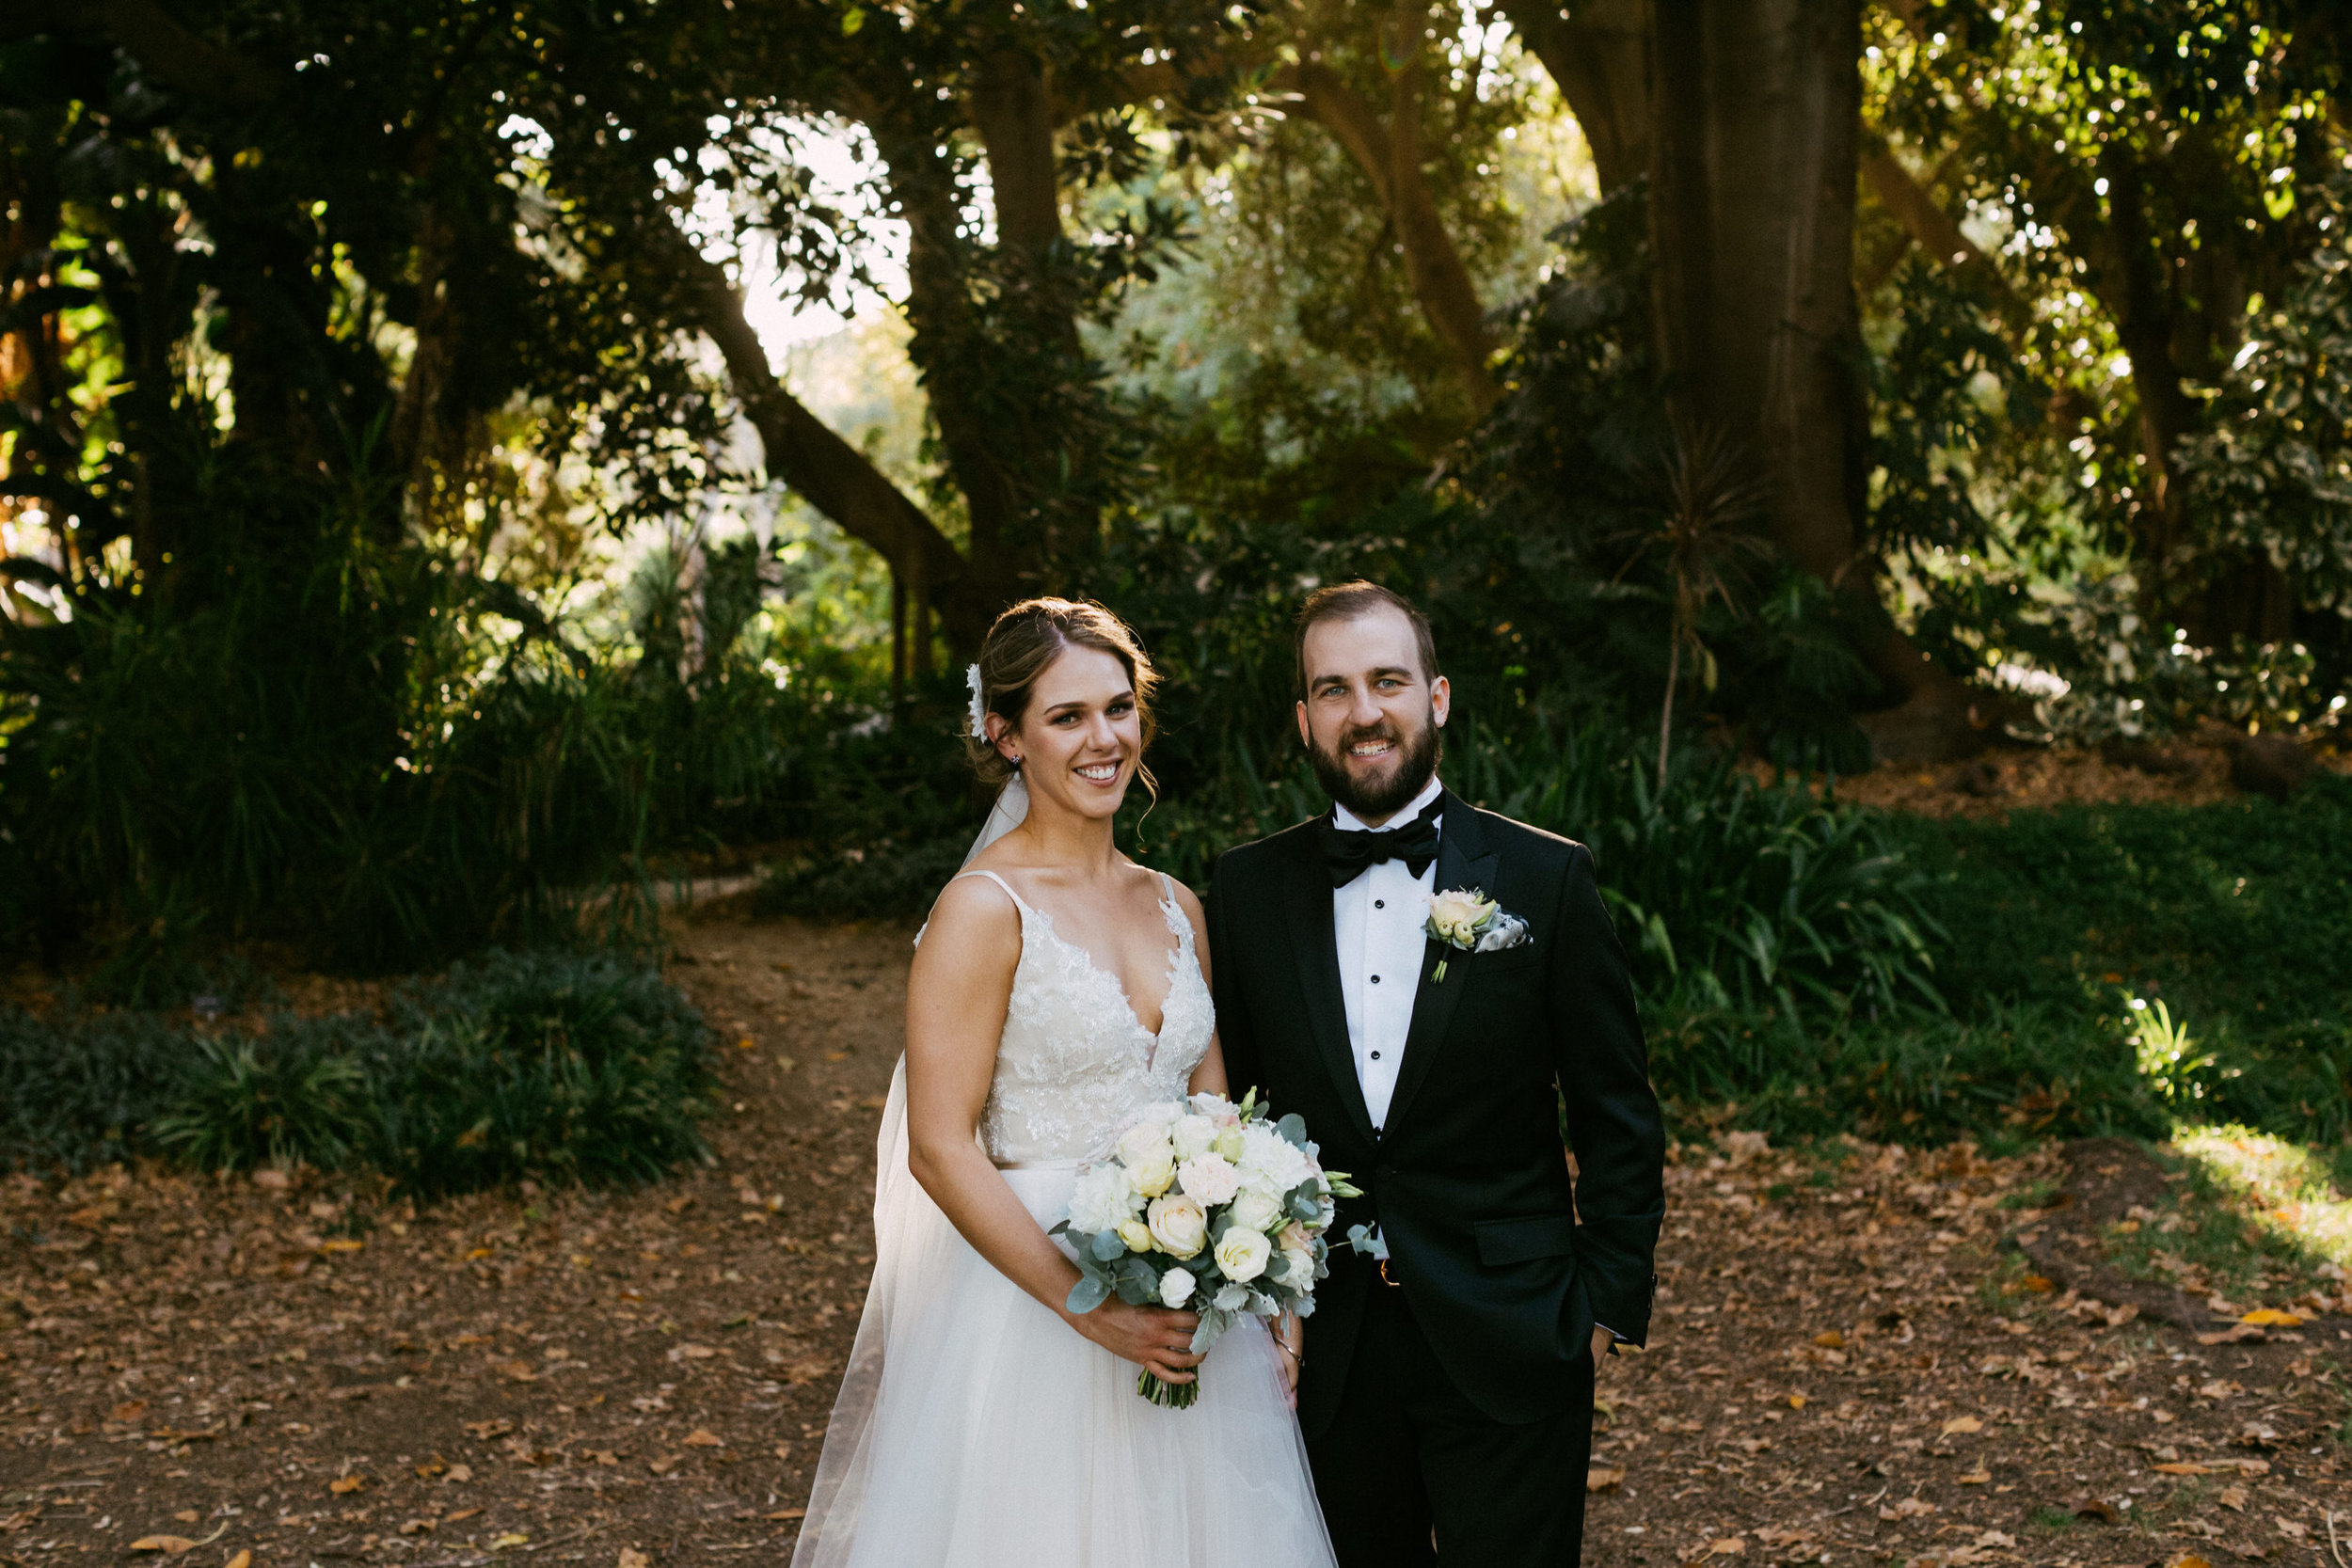 Adelaide Wedding 2019 090.jpg